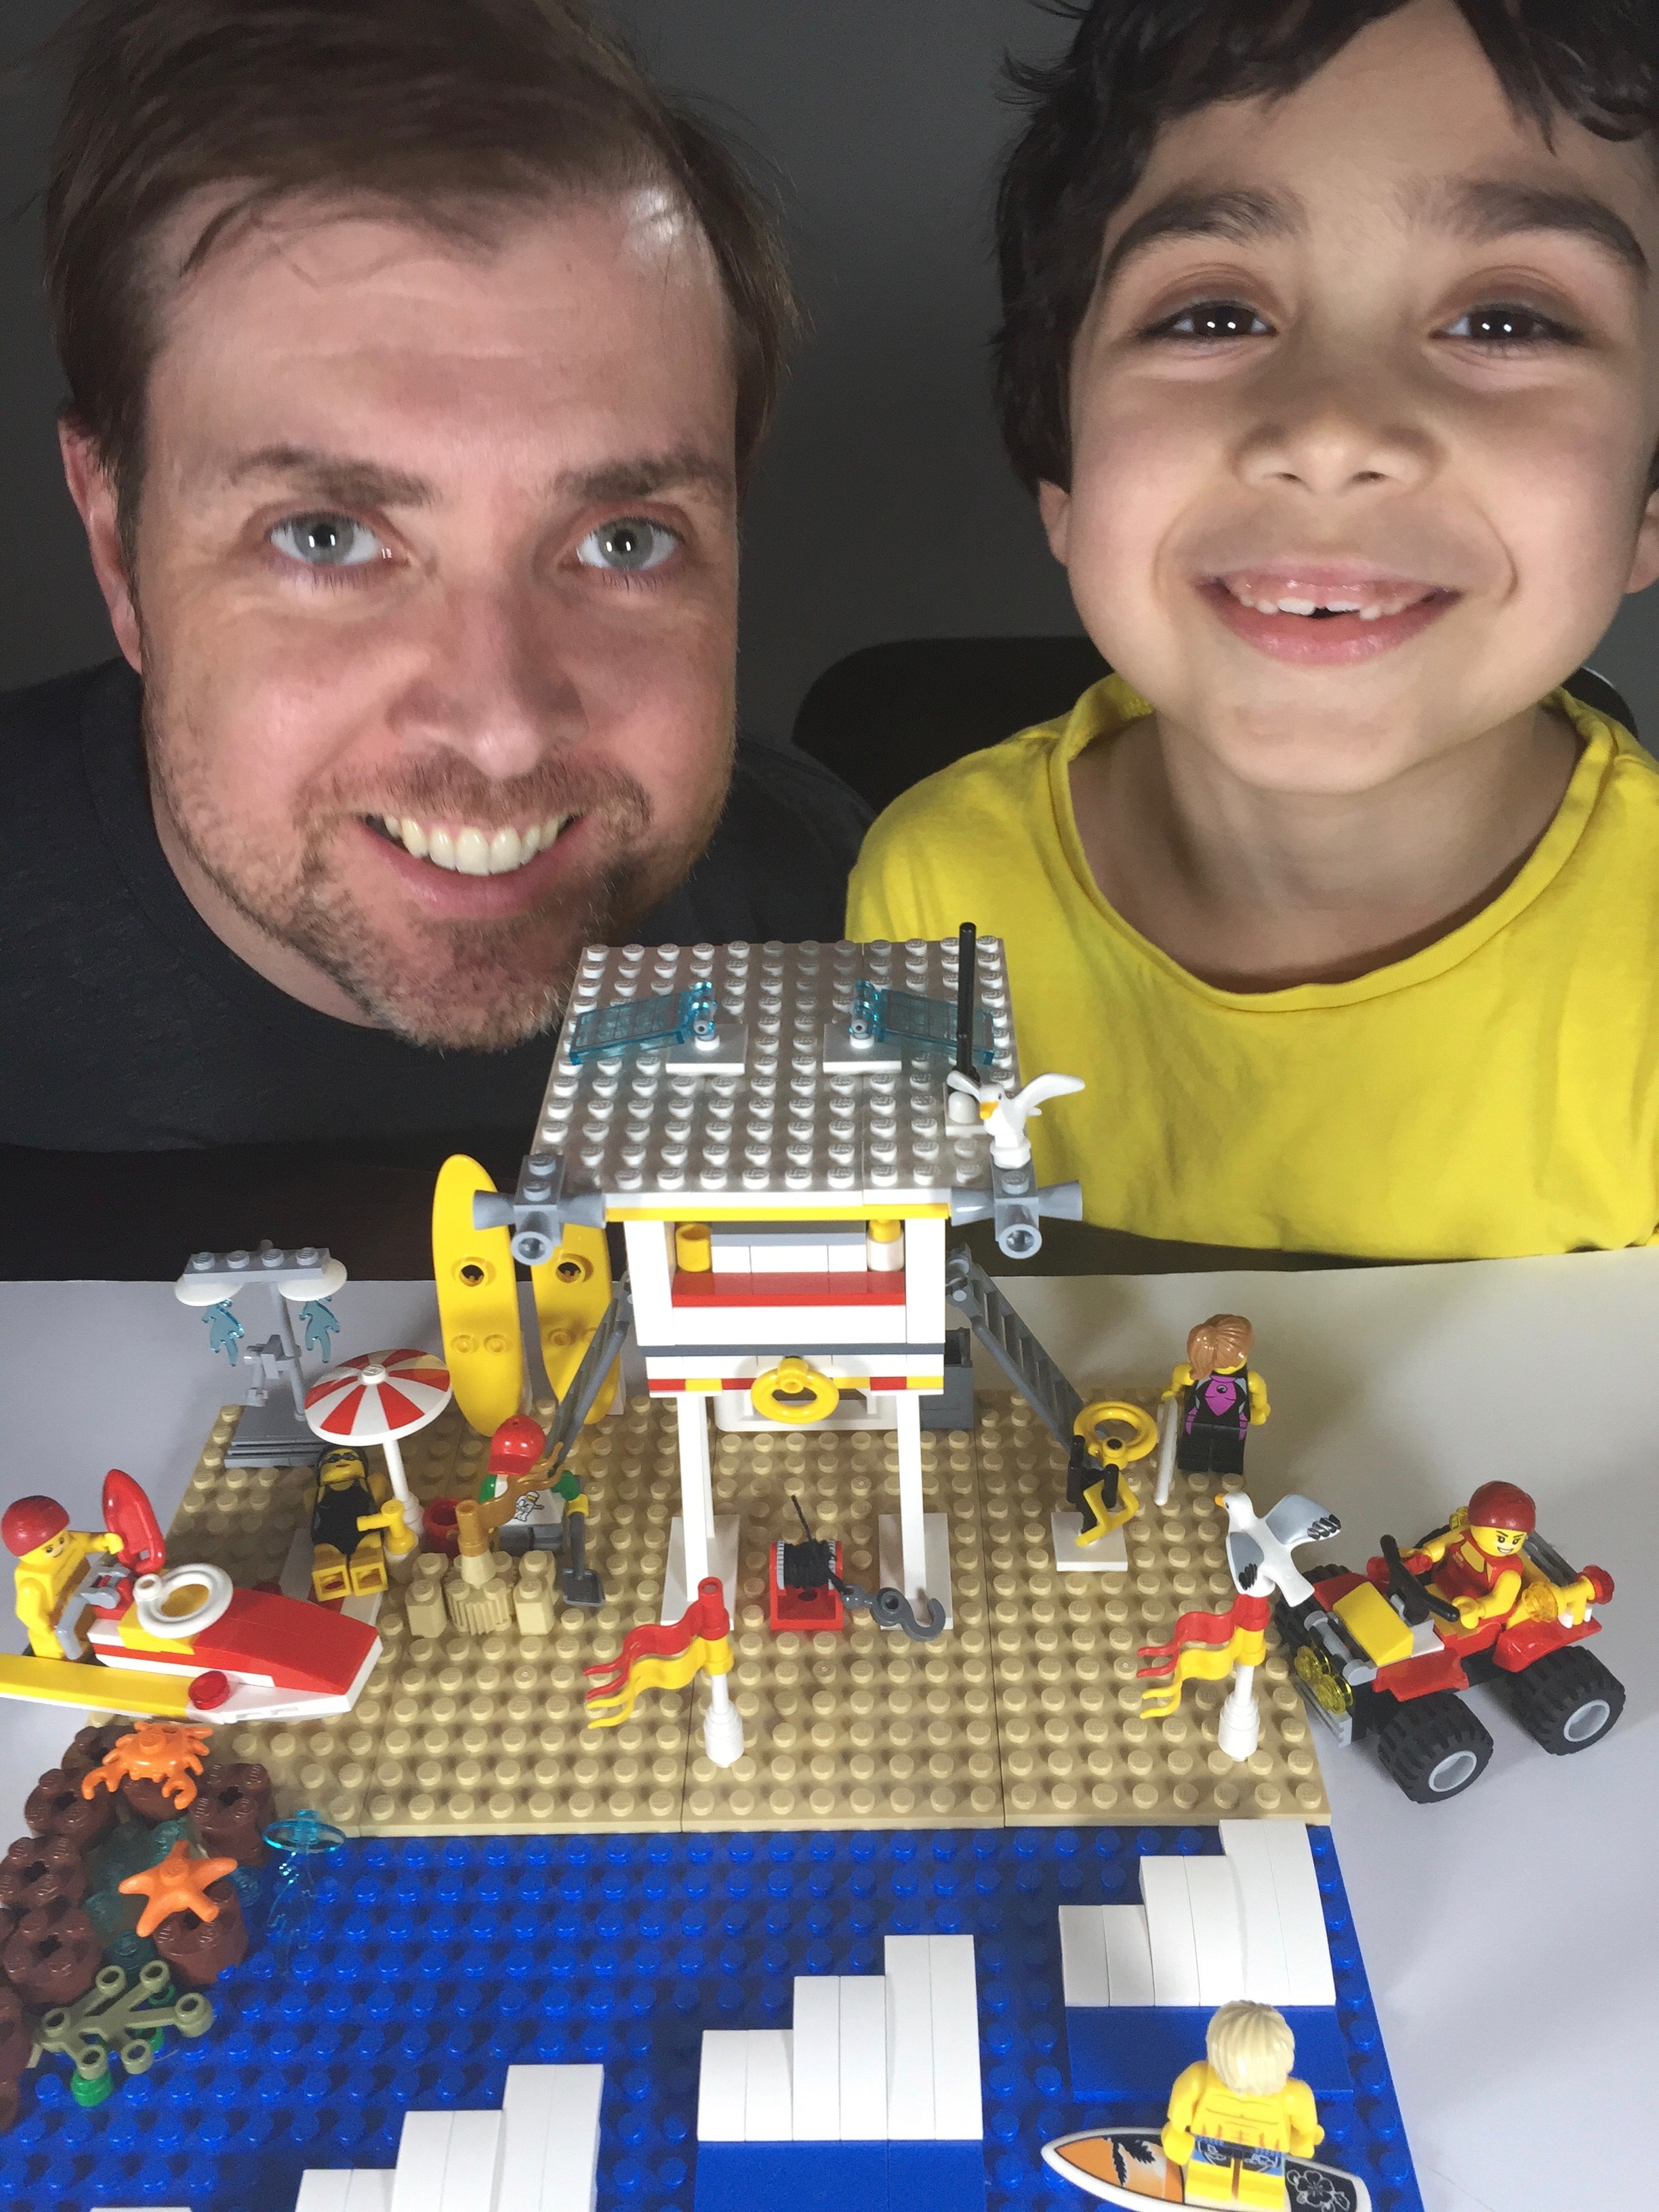 Lego Ideas Blog 10k Club Interview Meet Damien Aiden Macrae Ninjago 70594 The Lighthouse Siege Started And Flash Big Smiles As They Show Off Their Surf Rescue Project